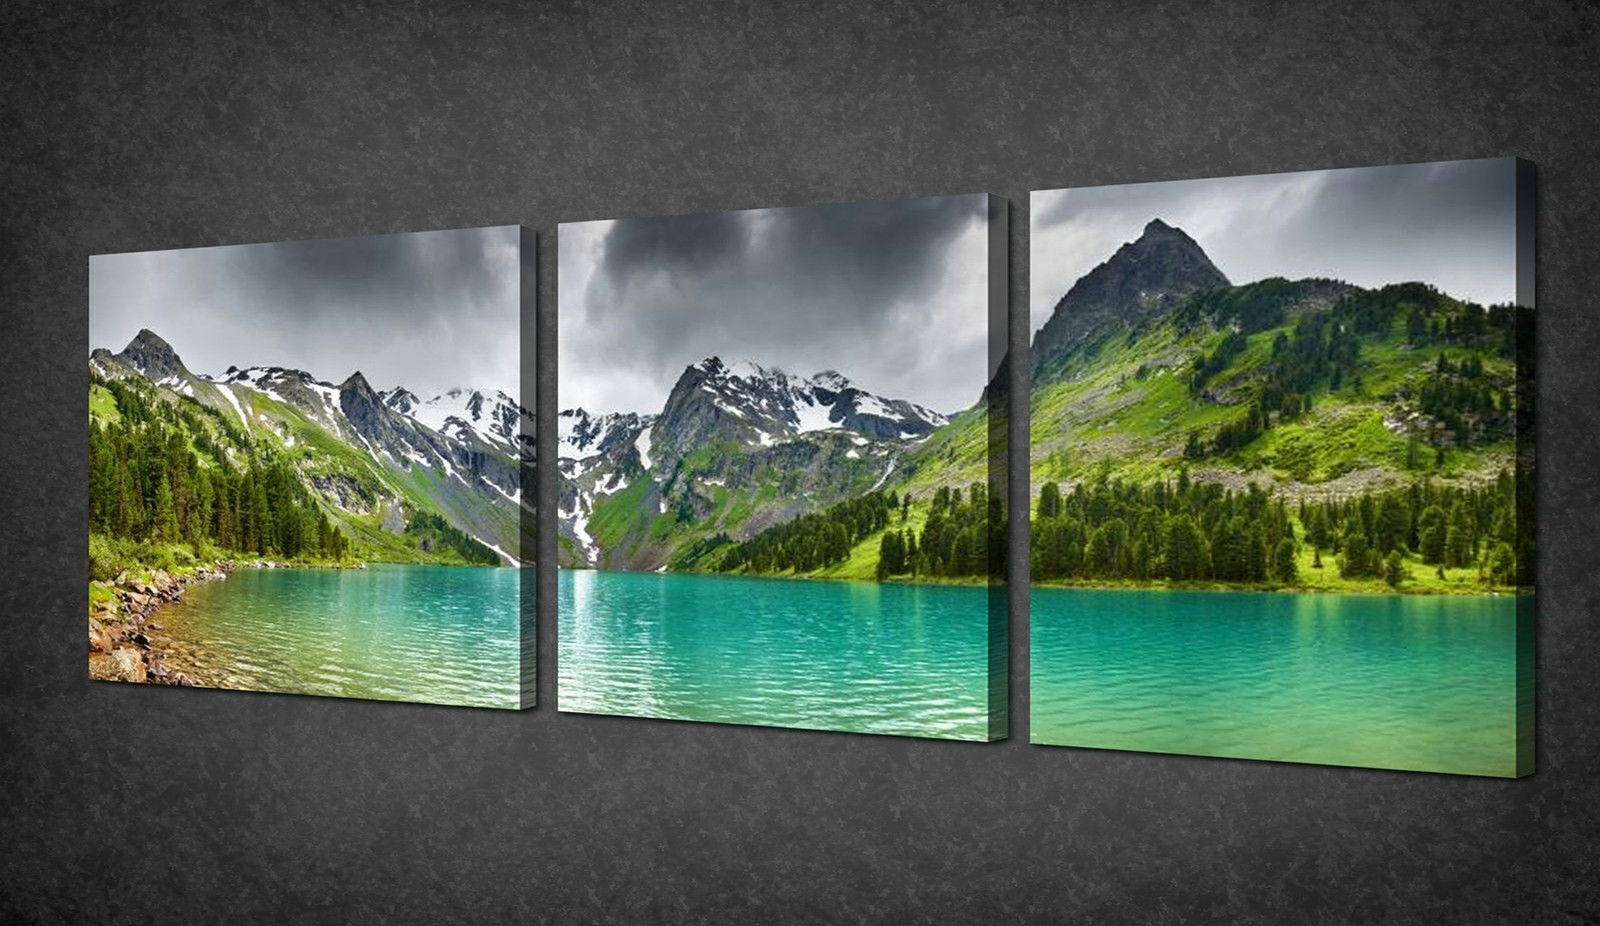 Wall Art: Best Sample Ideas Panoramic Wall Art Glass Wall Art With Regard To Most Popular Panoramic Canvas Wall Art (View 4 of 15)